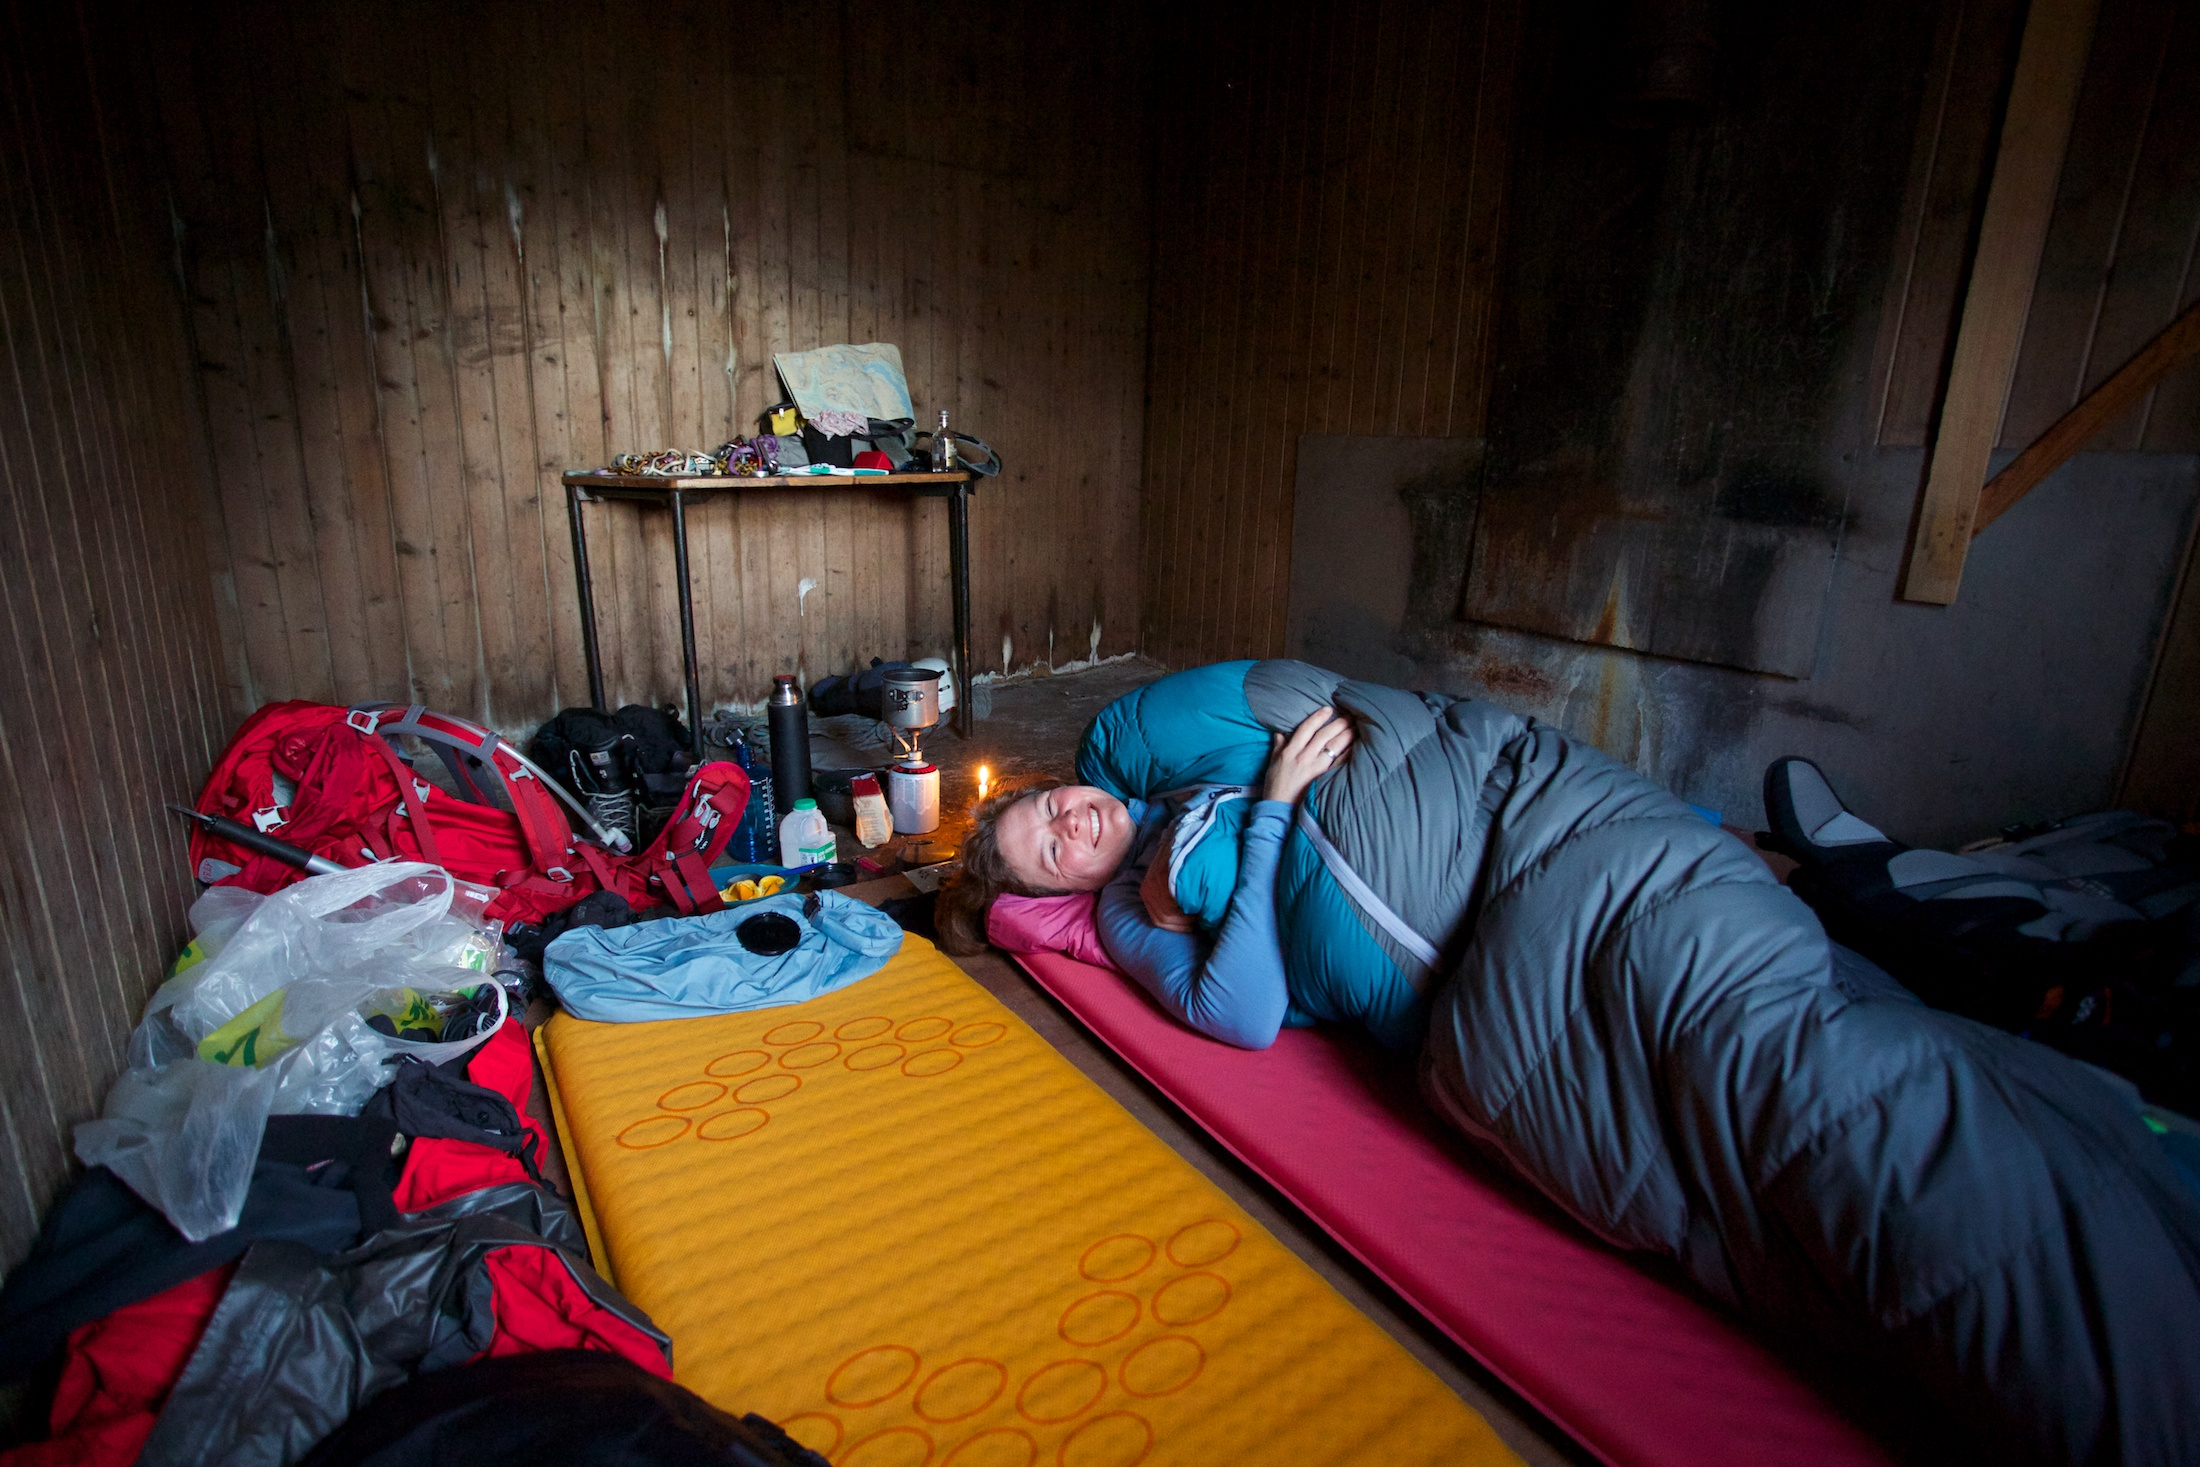 We bagsied a private room at the bothy. Overnight temperature was about 3 °C